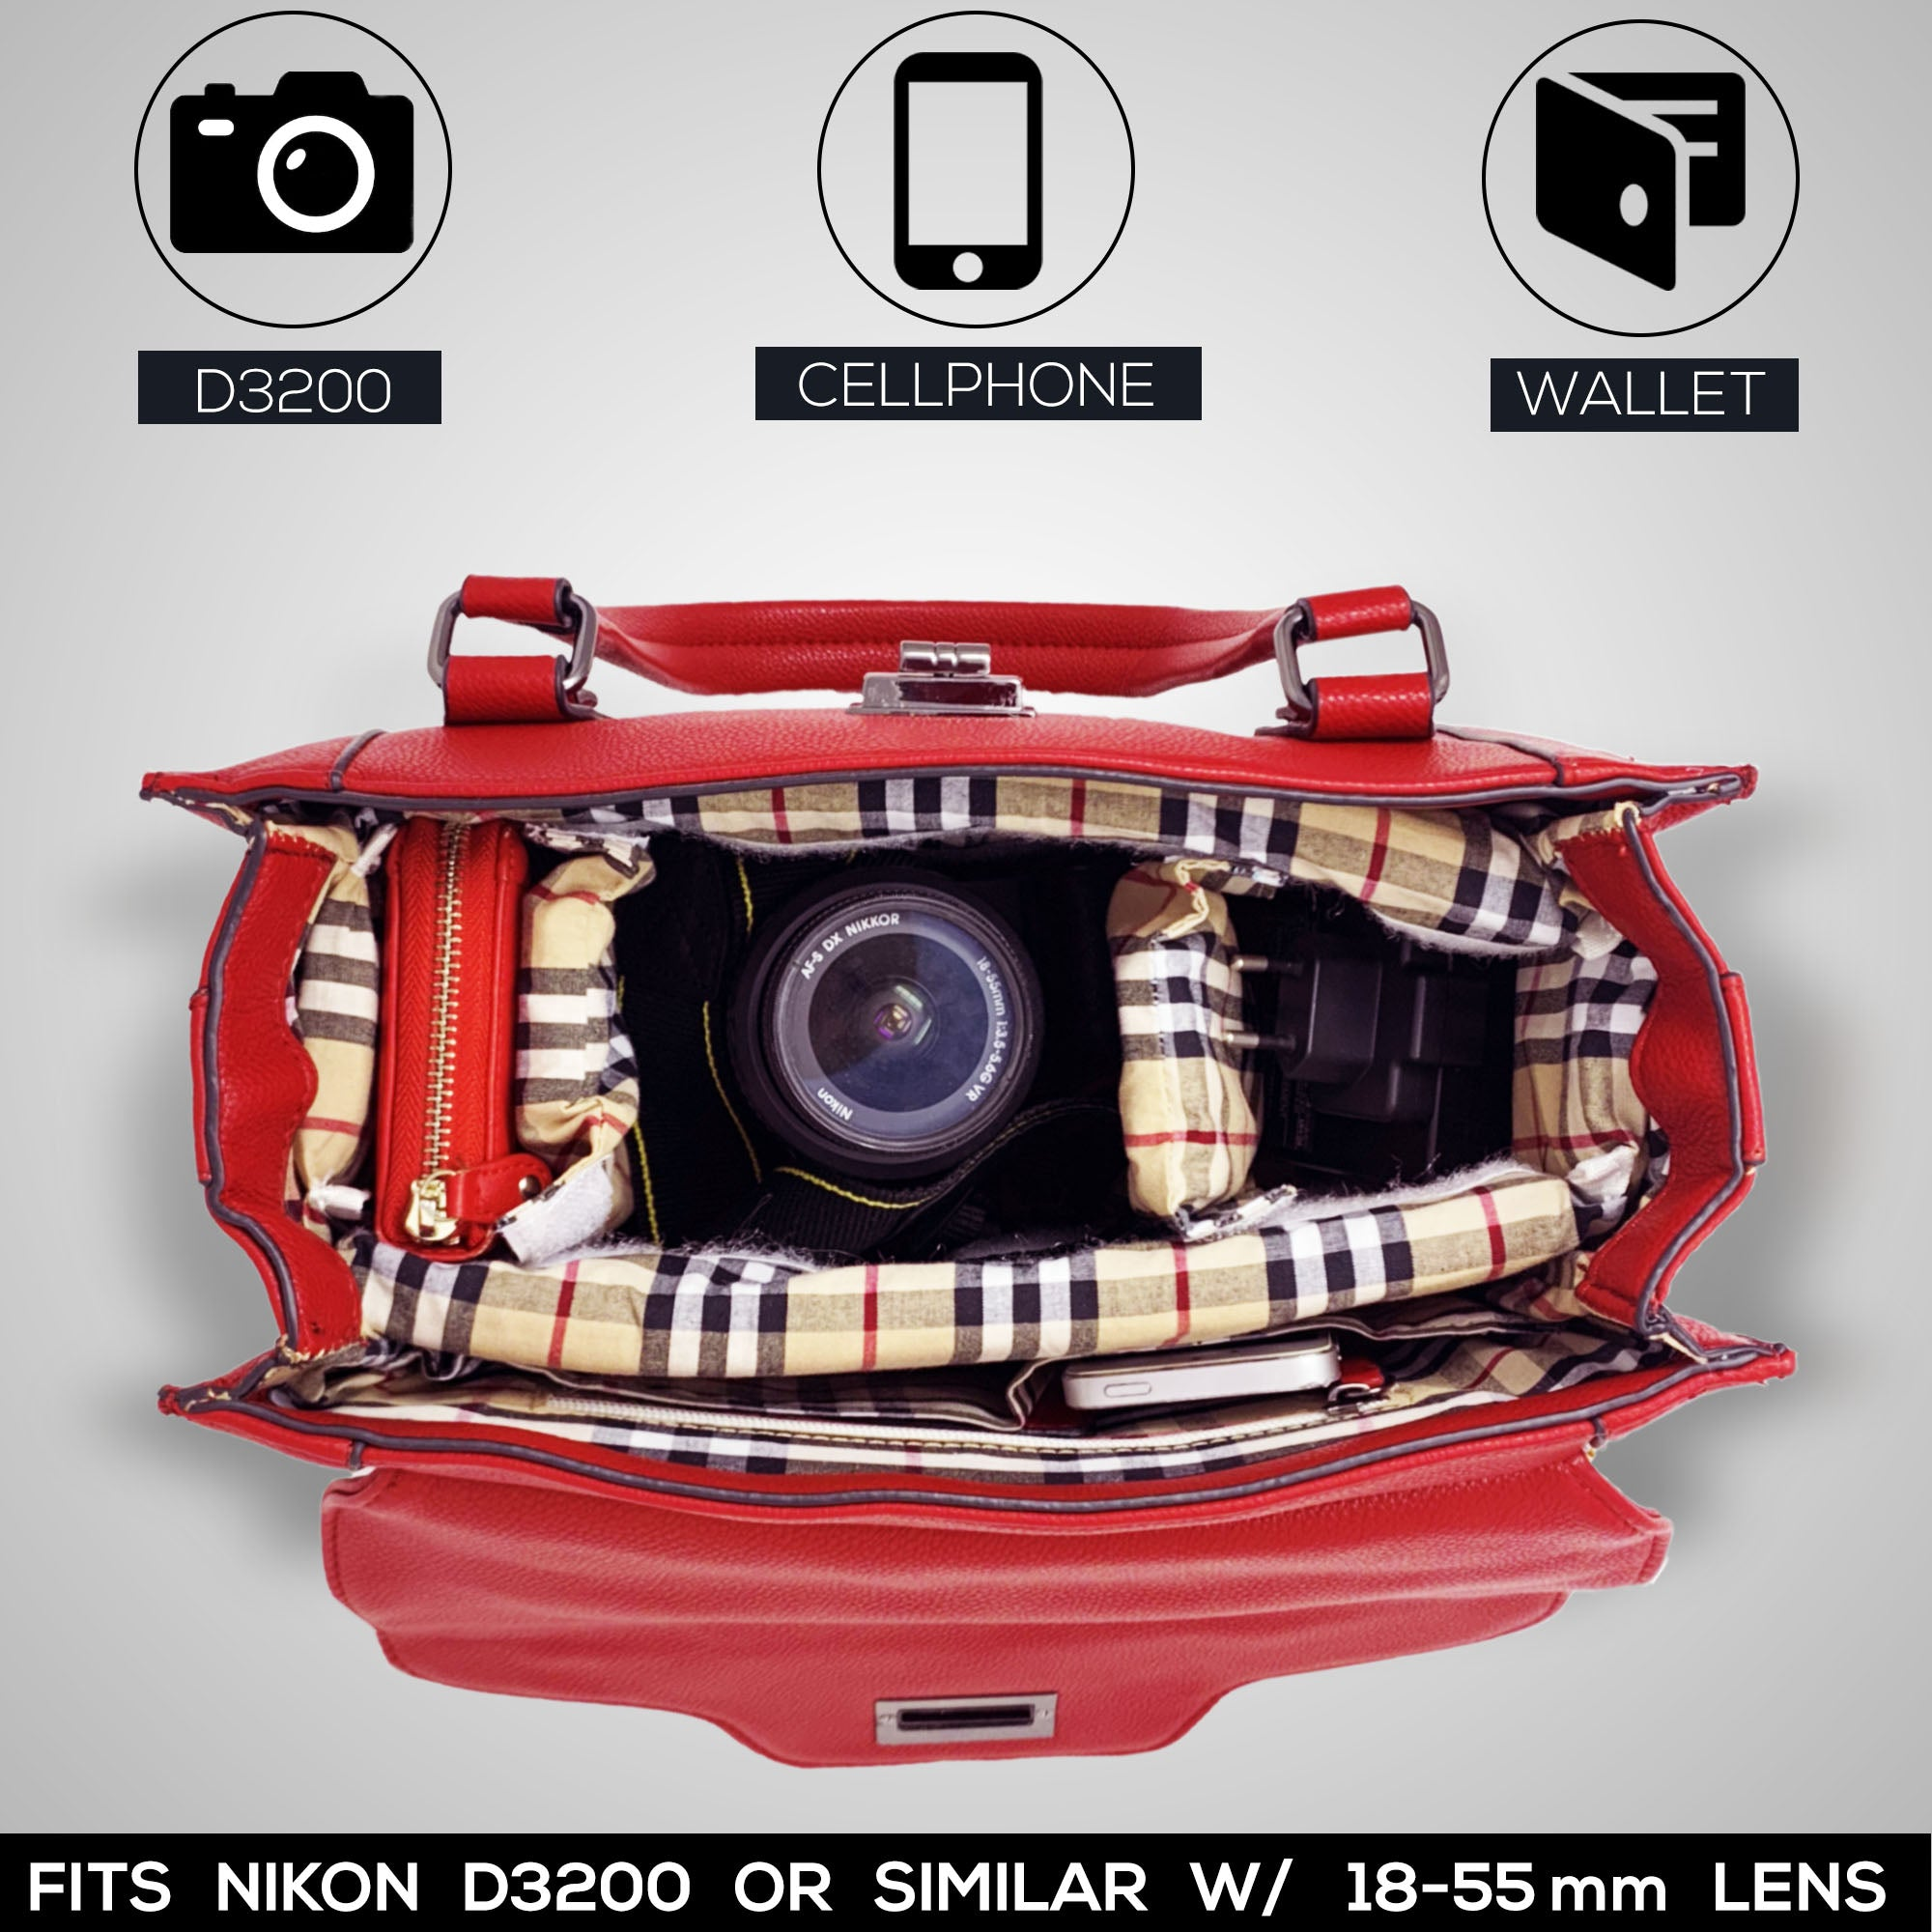 women camera case with DSLR body, lens, wallet and cellphone